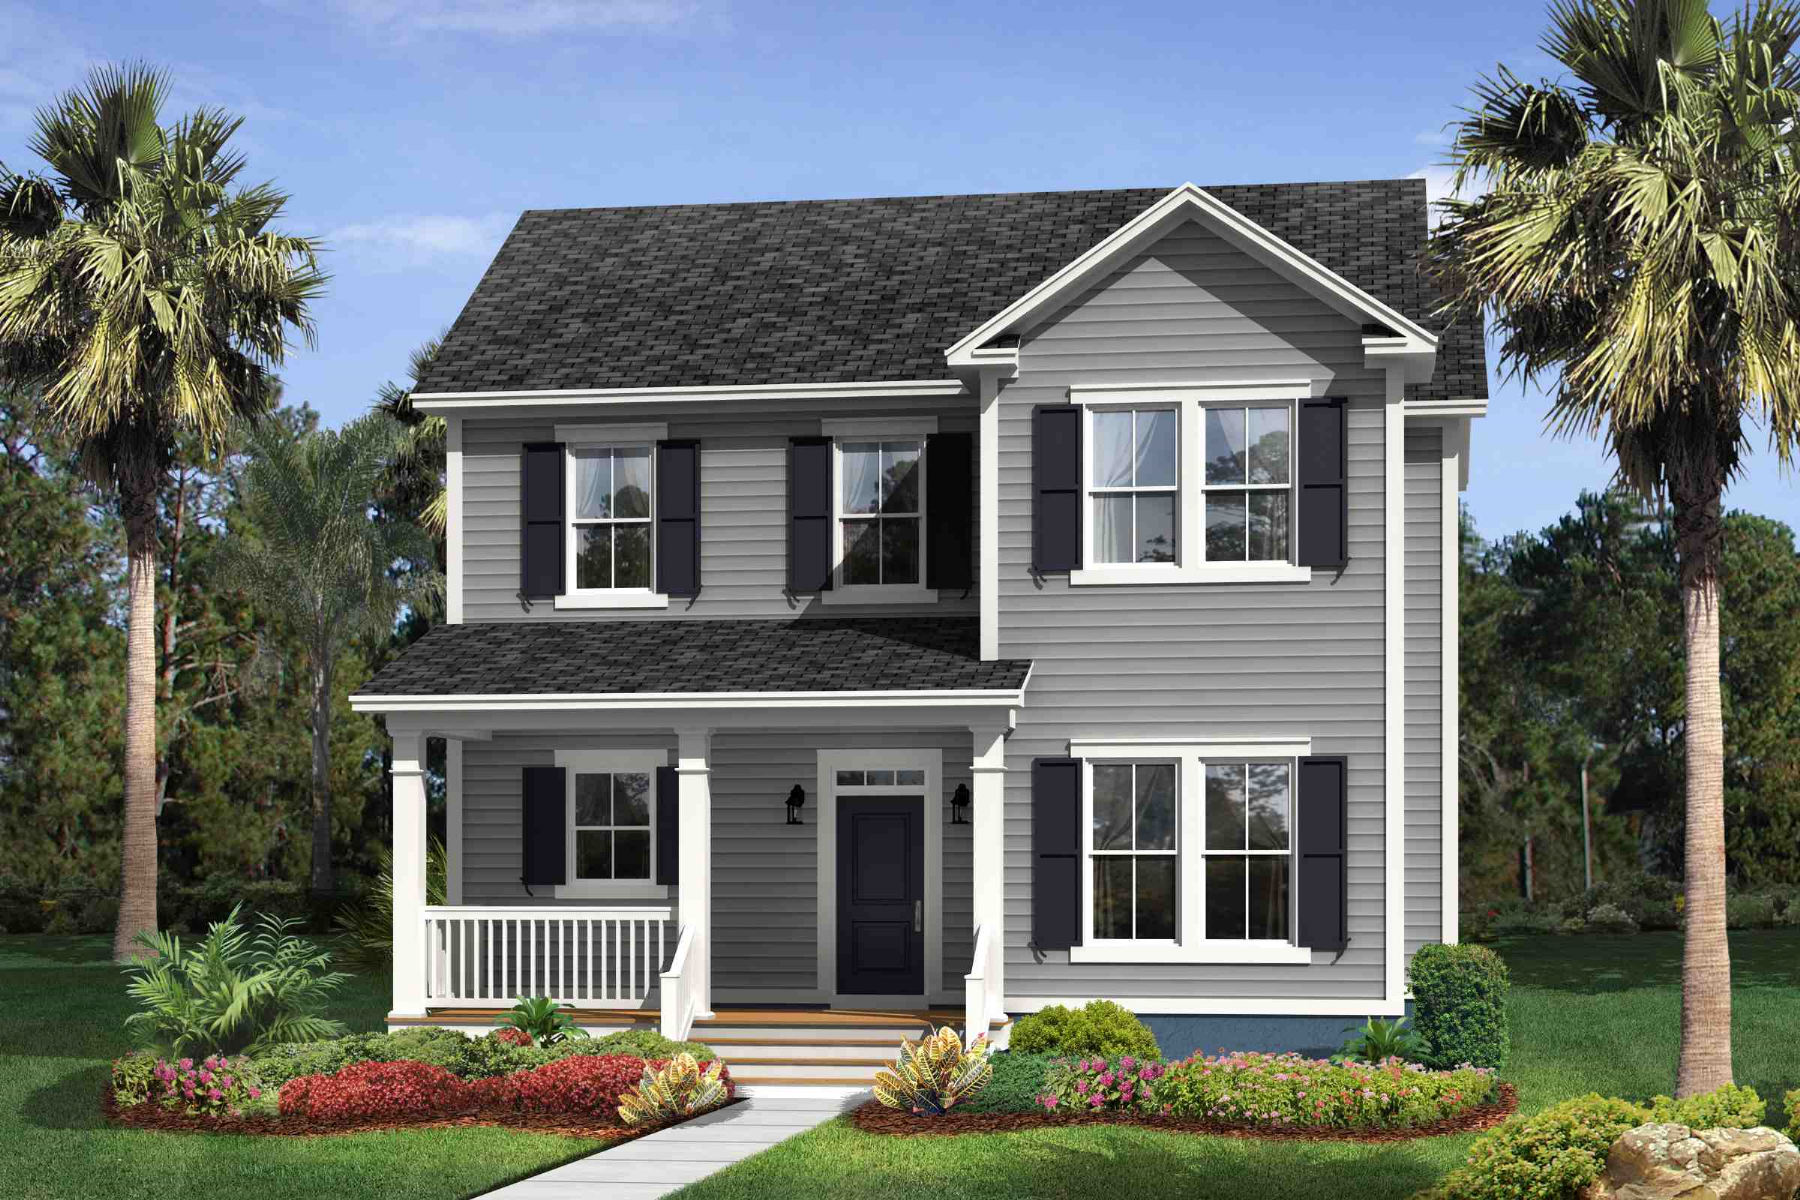 Ryland homes sc home review for Ryland home plans